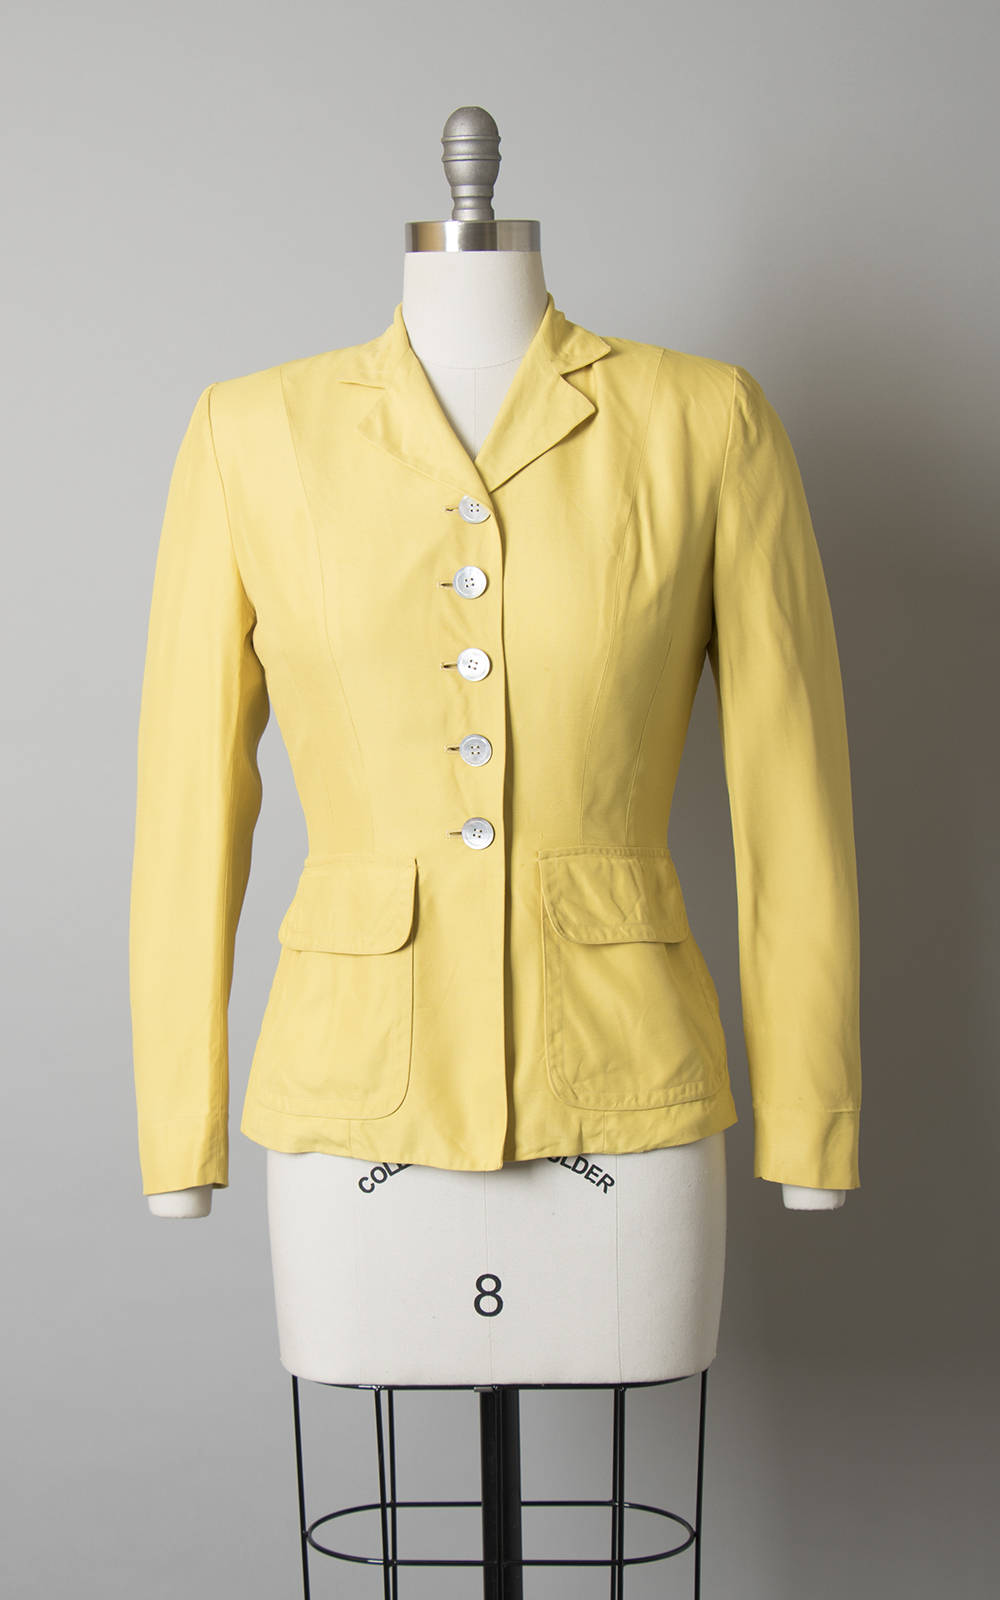 Vintage 1940s Blazer | 40s Yellow Lightweight Tailored Jacket with Mother of Pearl Shell Buttons (small)